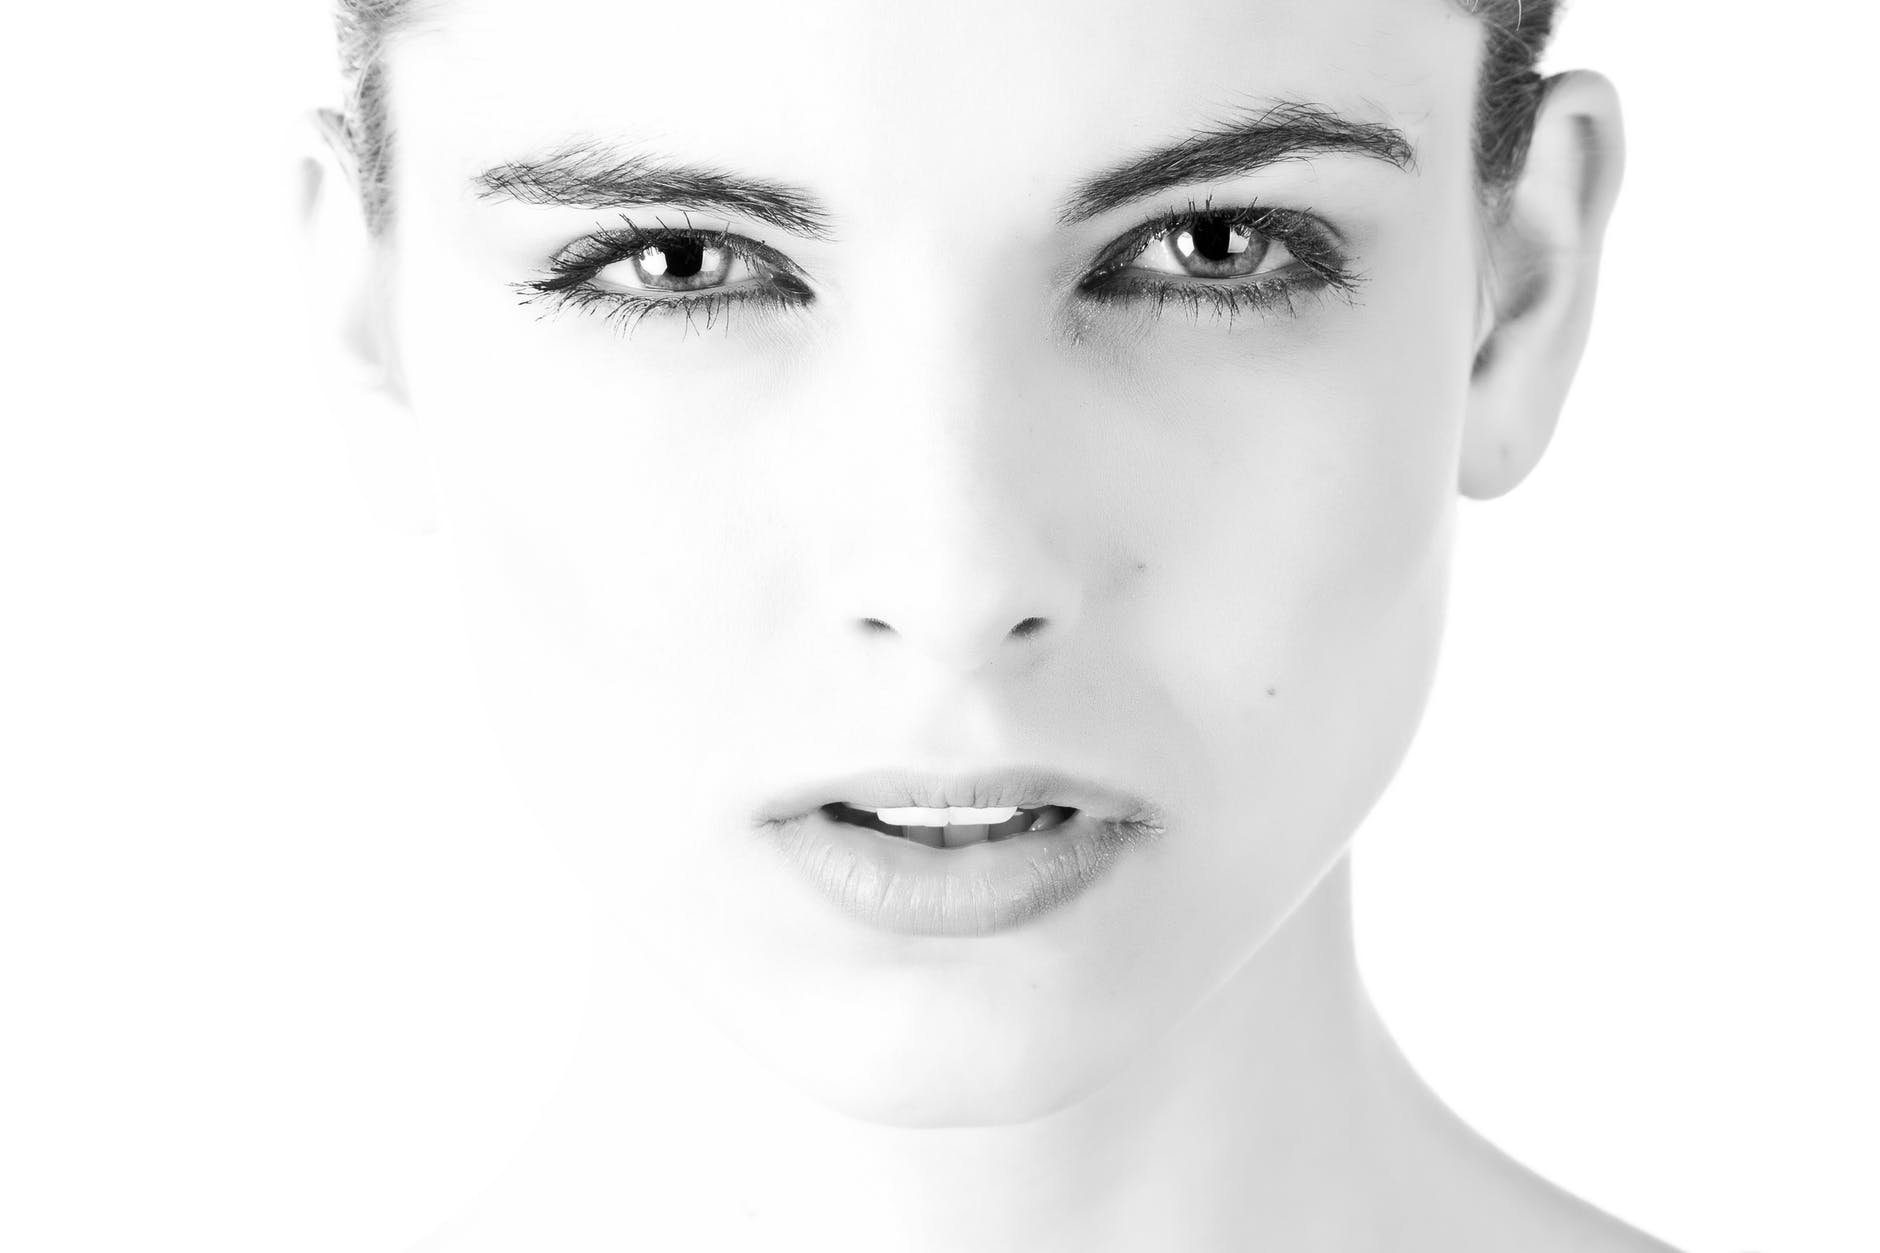 model-face-beautiful-black-and-white-407035.jpg